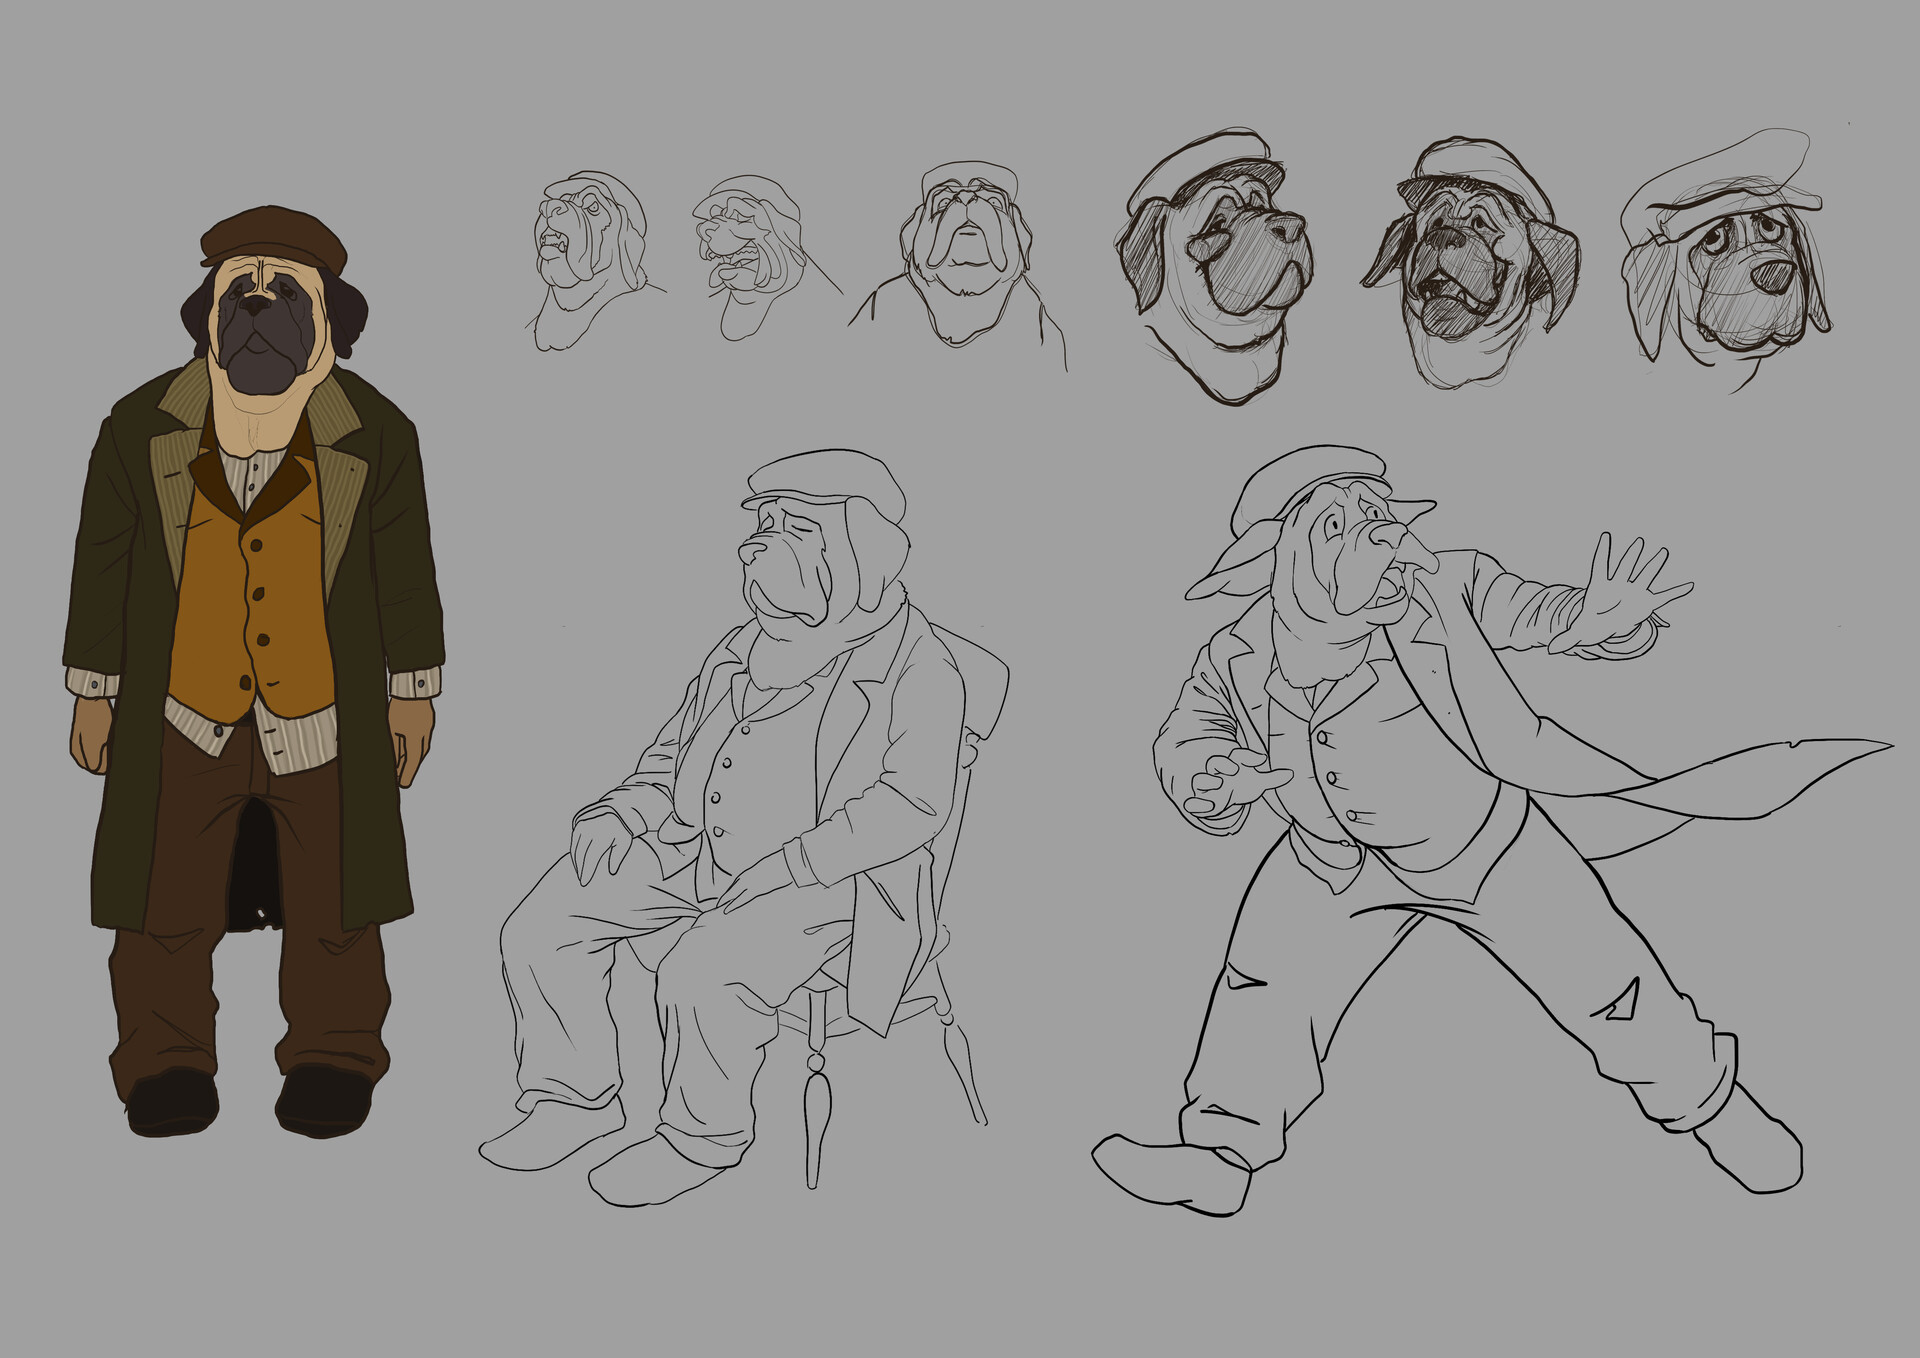 Final sketch, expressions and poses. I liked the sitting pose a lot because he looks so cute and sad, but it's not very dynamic so I picked the running one for th final render.